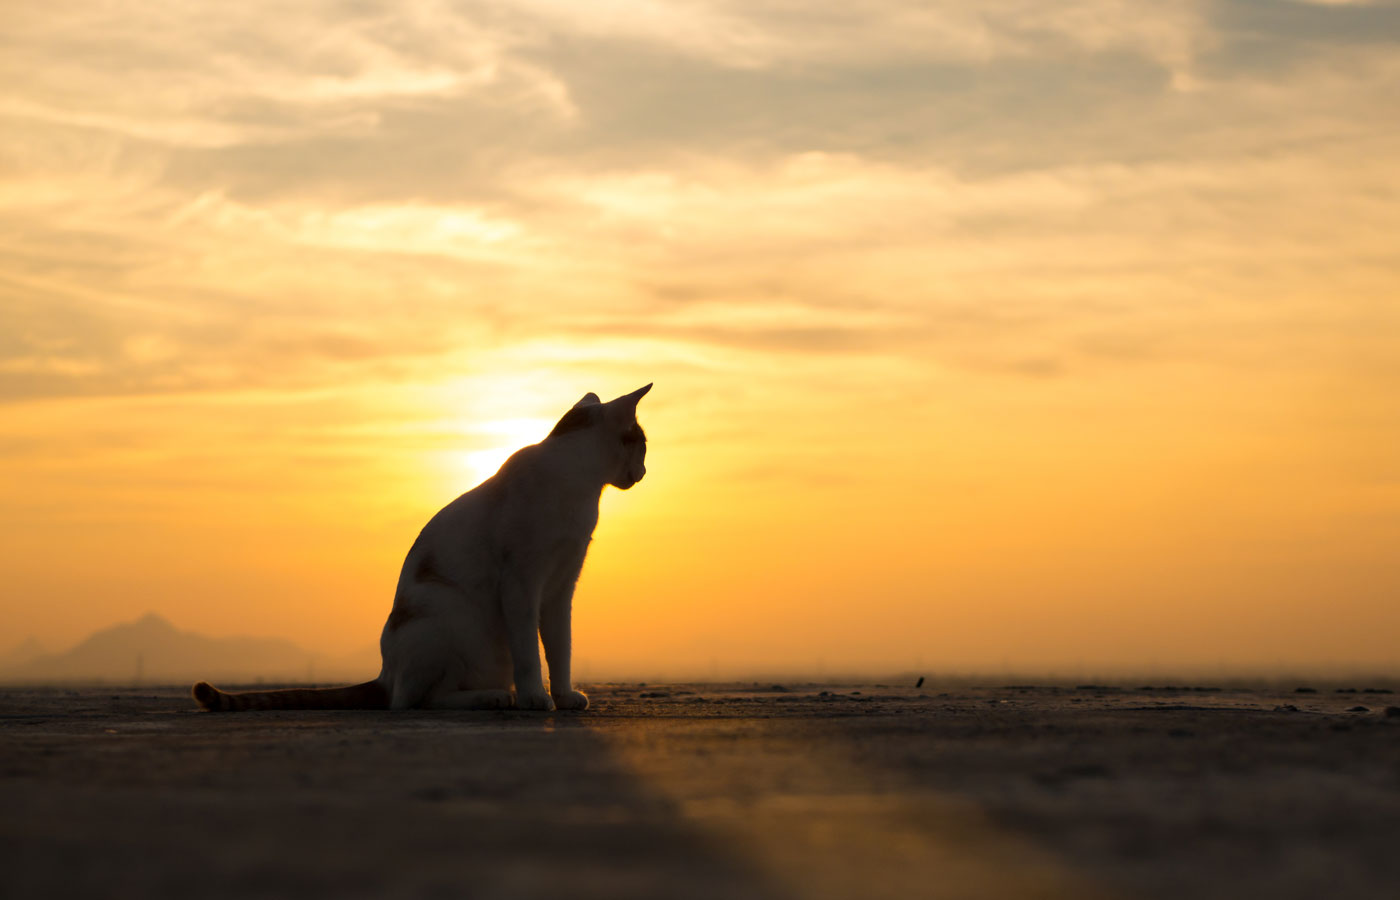 Cute cat on the roof,sunset background,cat looking